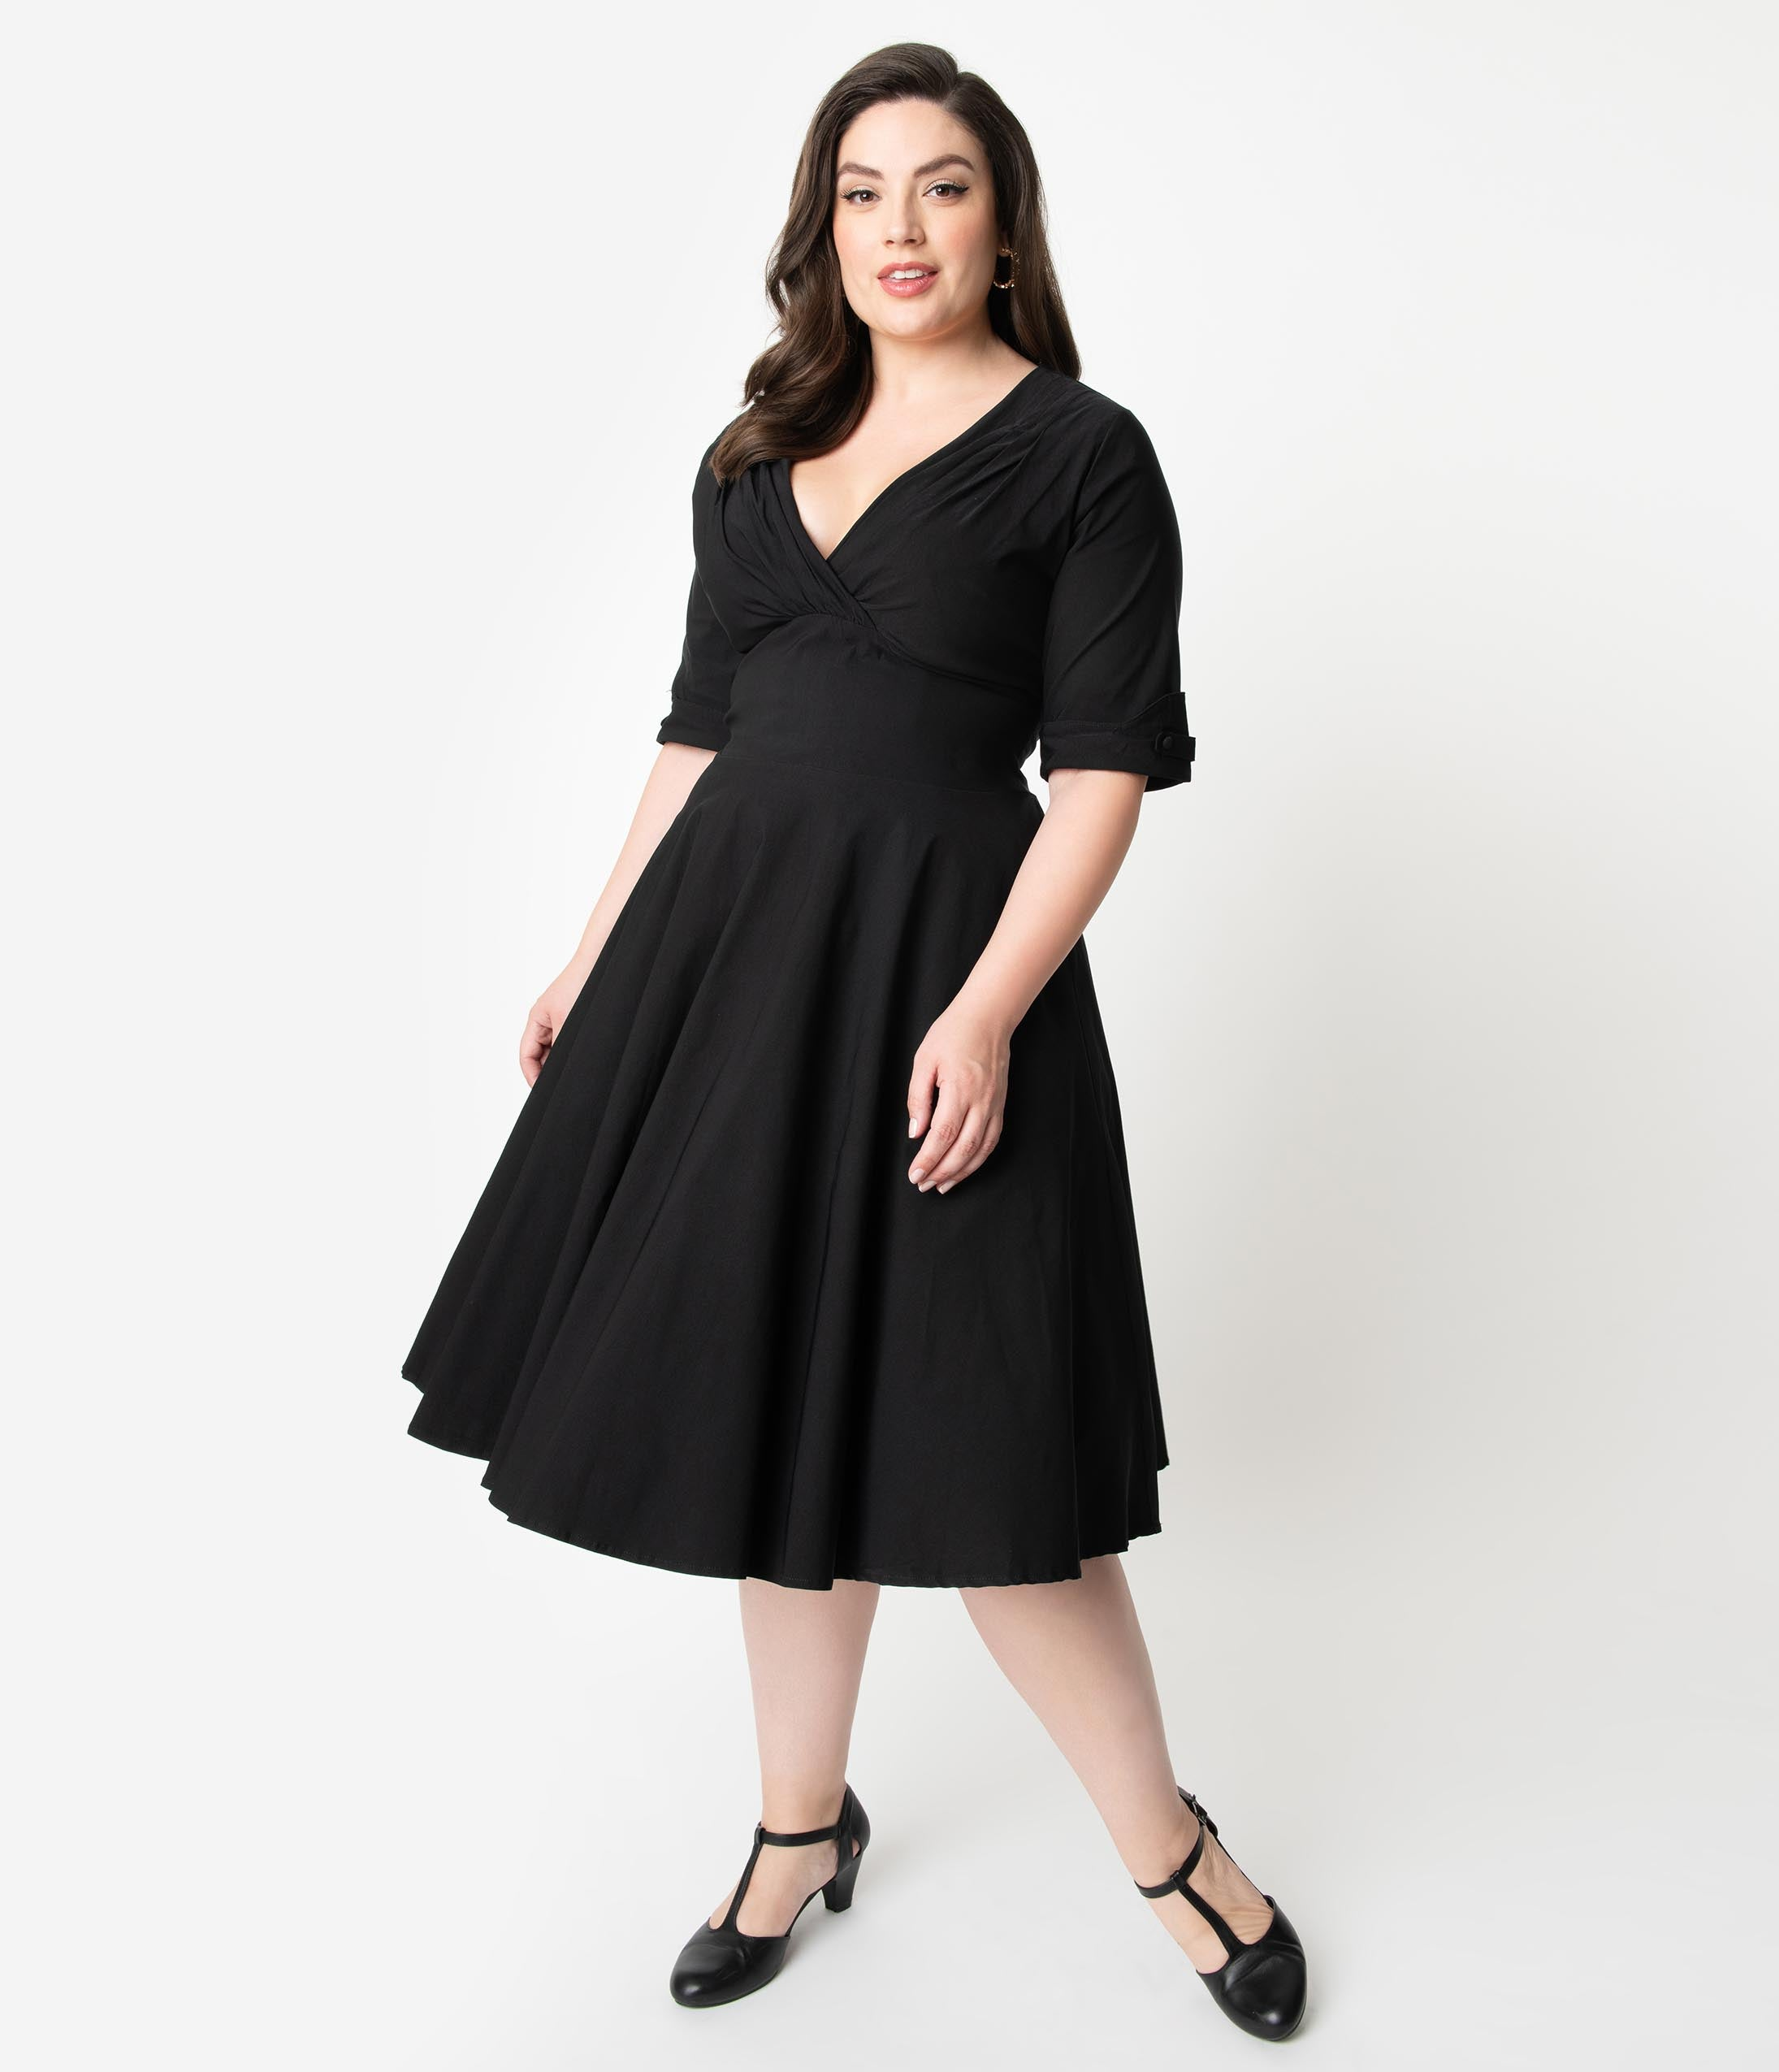 1950s Plus Size Dresses, Swing Dresses Unique Vintage Plus Size 1950S Black Delores Swing Dress With Sleeves $88.00 AT vintagedancer.com